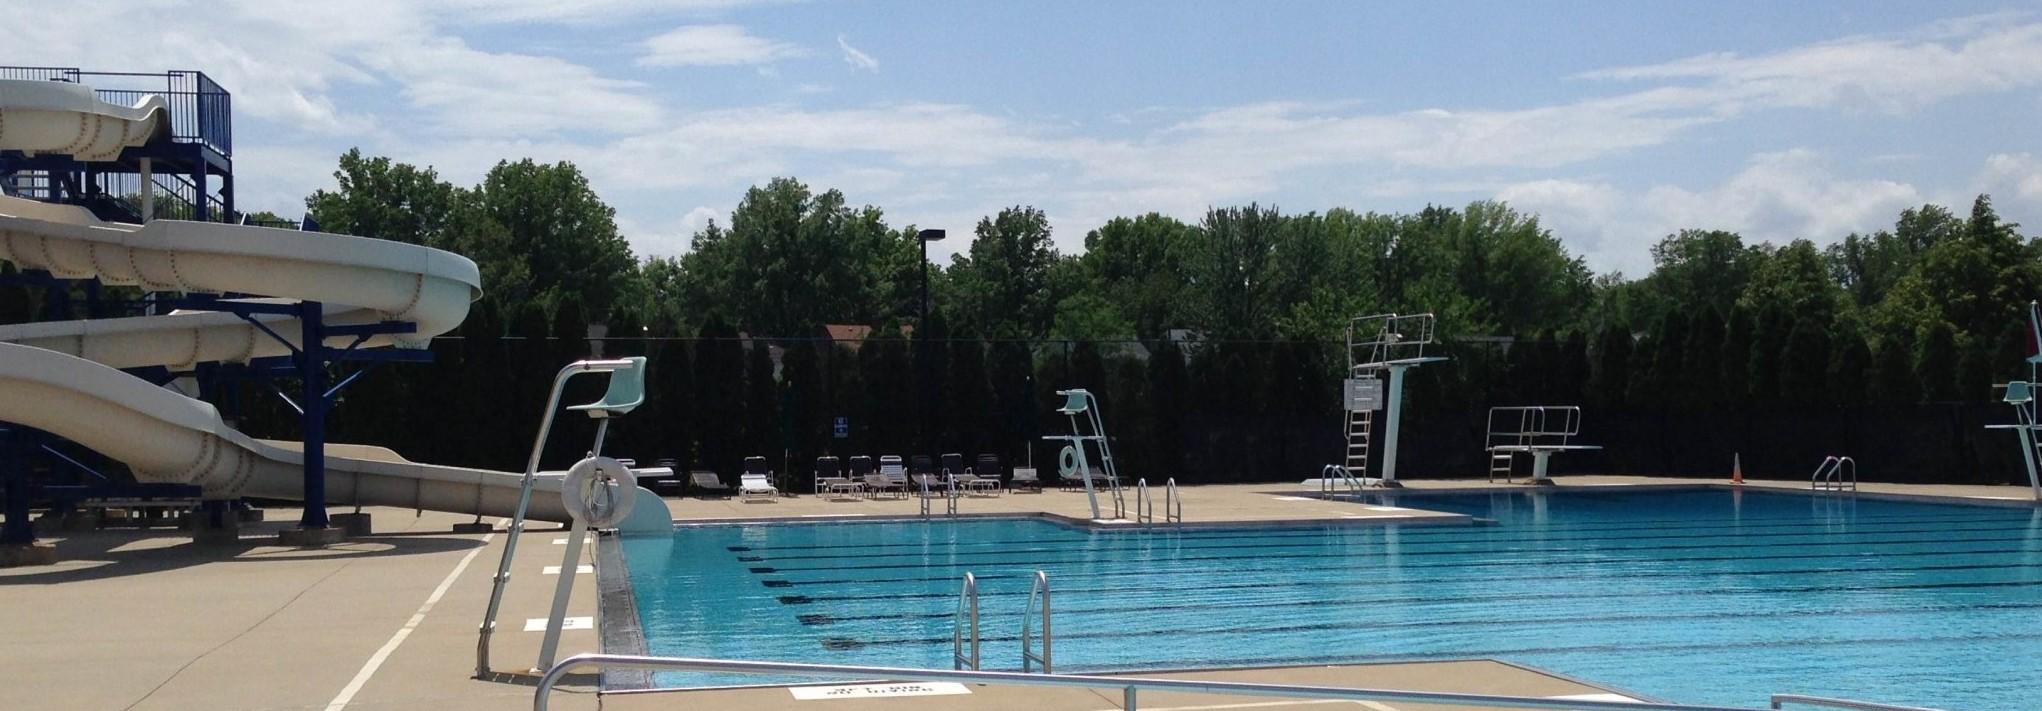 Purvis park and city pool city of university heights for Garden city pool hours